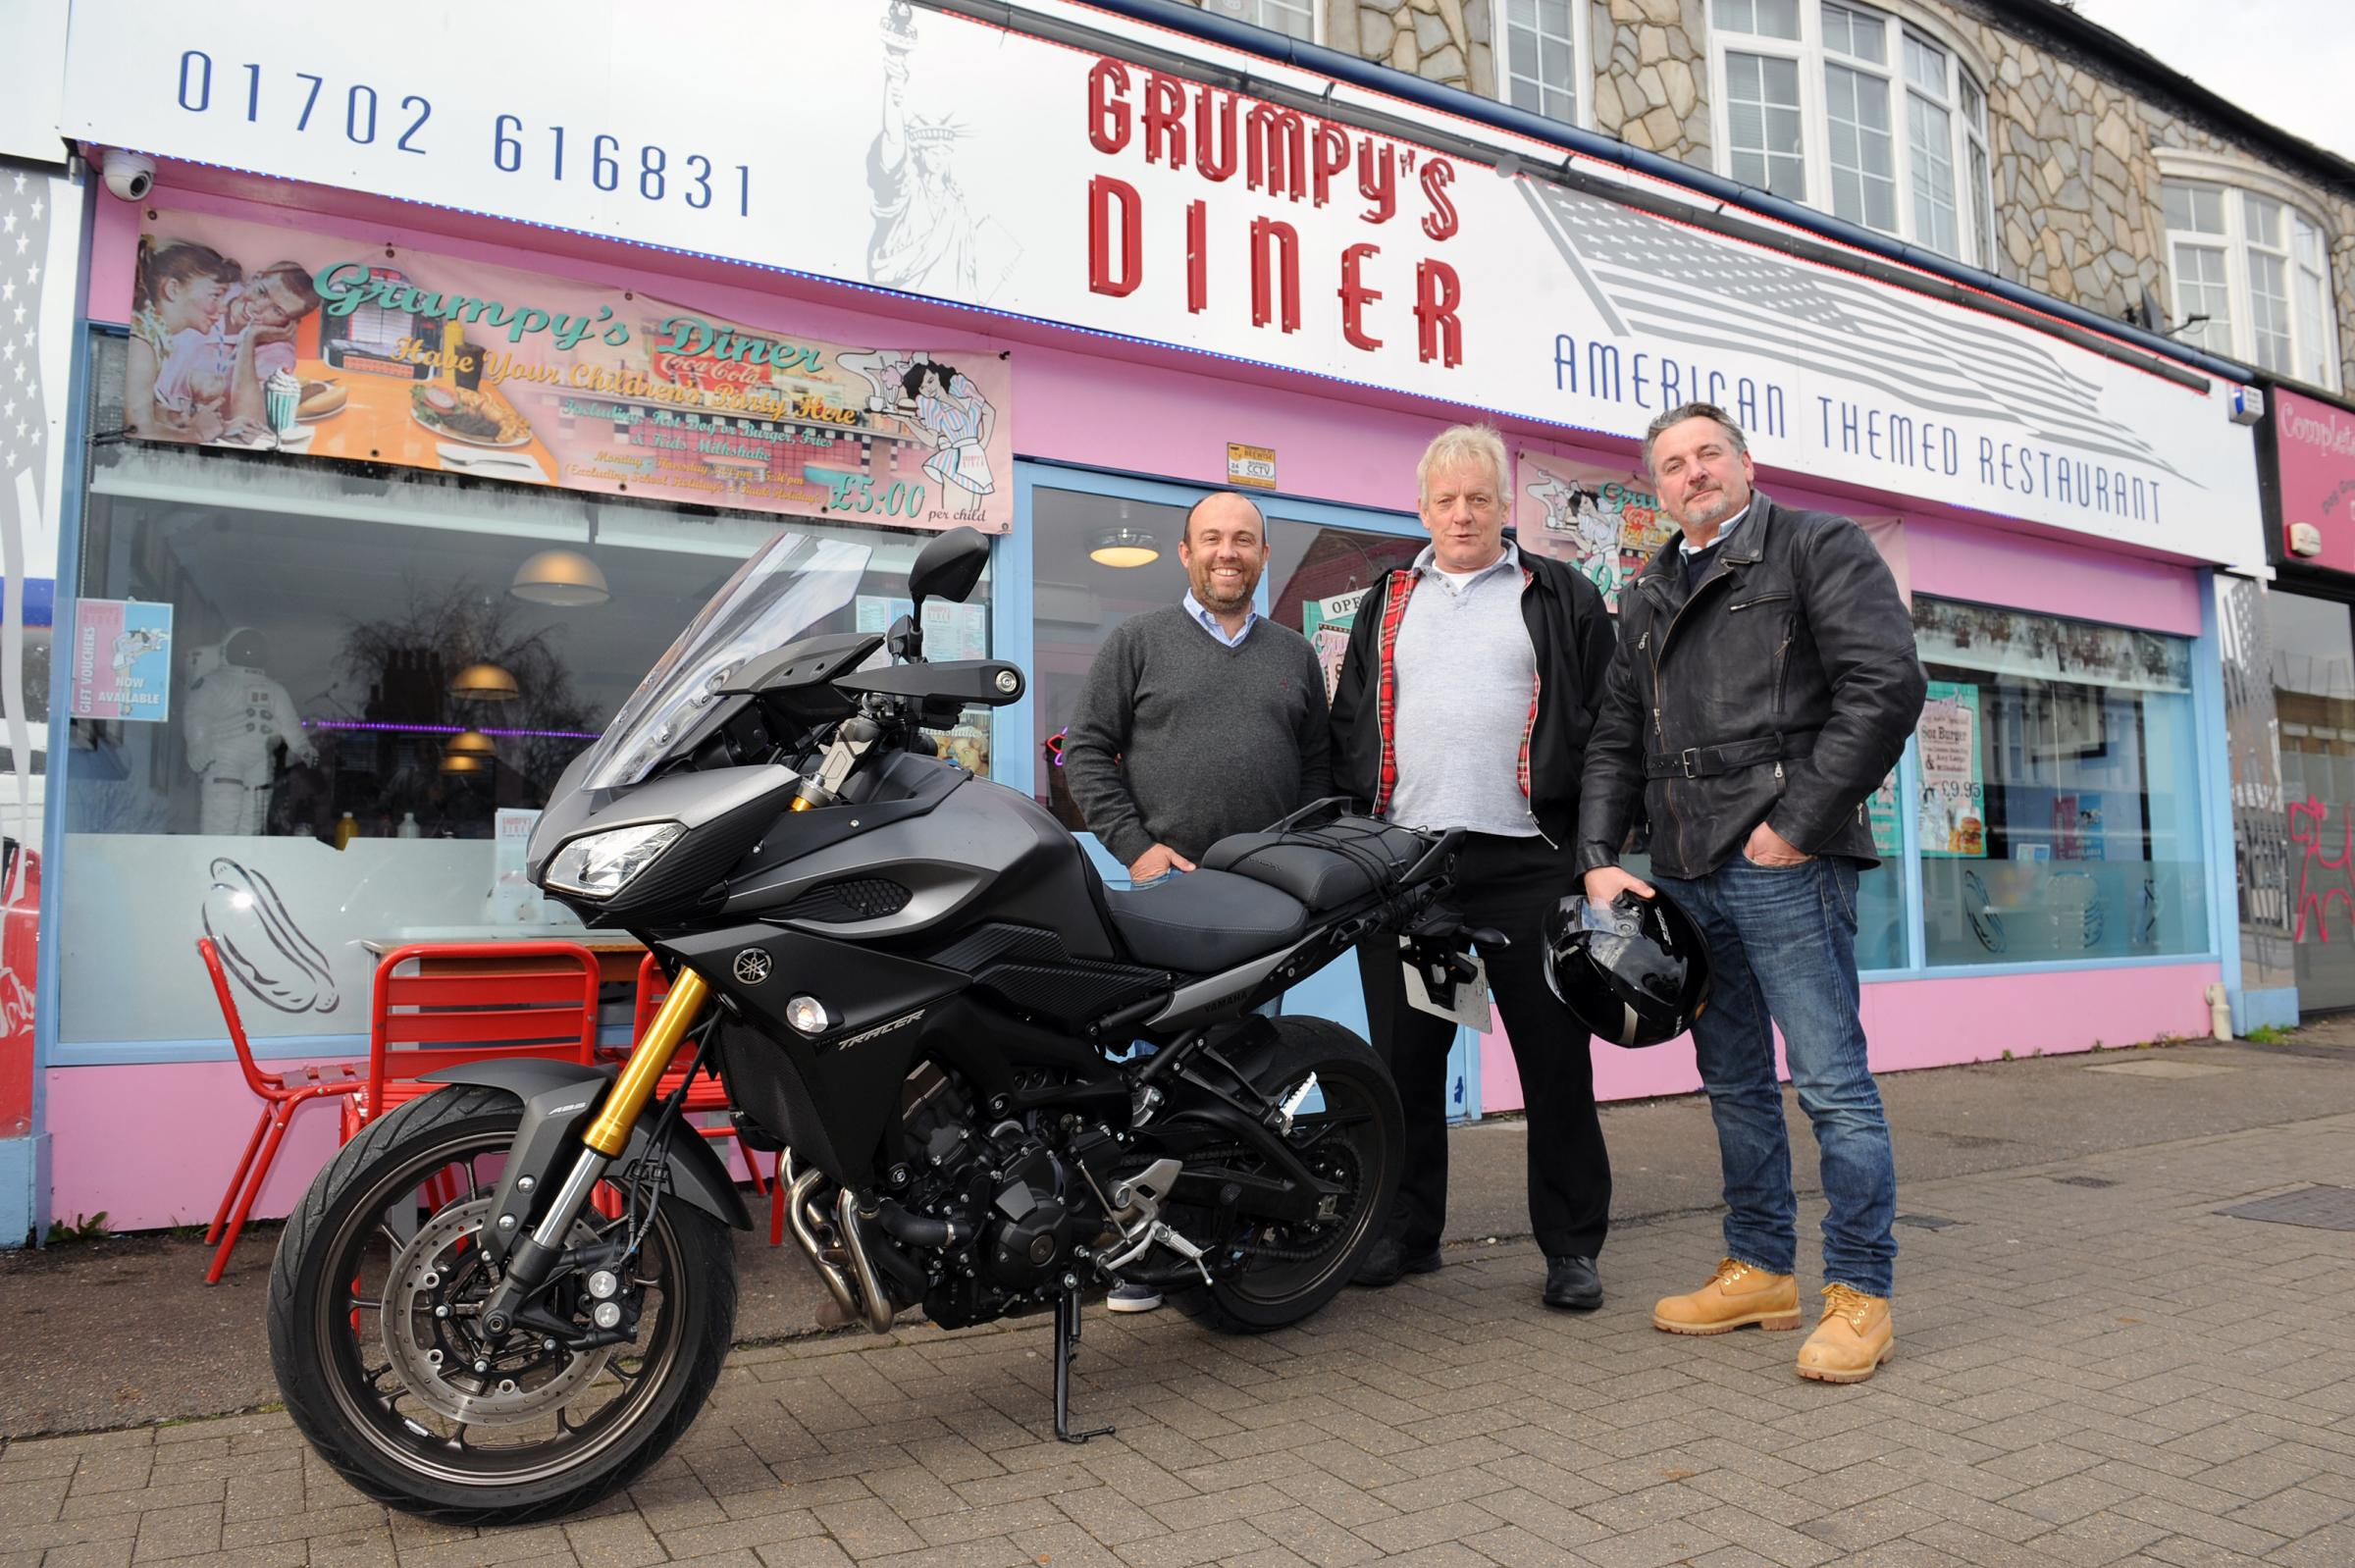 L-r Paul Thompson, chairman of Southend Seafront Traders Association,  Paul van Looy owner of  Grumpy's Diner with biker Tony Spicer with his  Yamaha MT09 TracerGrumpy's Diner, Southchurch Road, SouthendJob Details The seafront traders have pitche